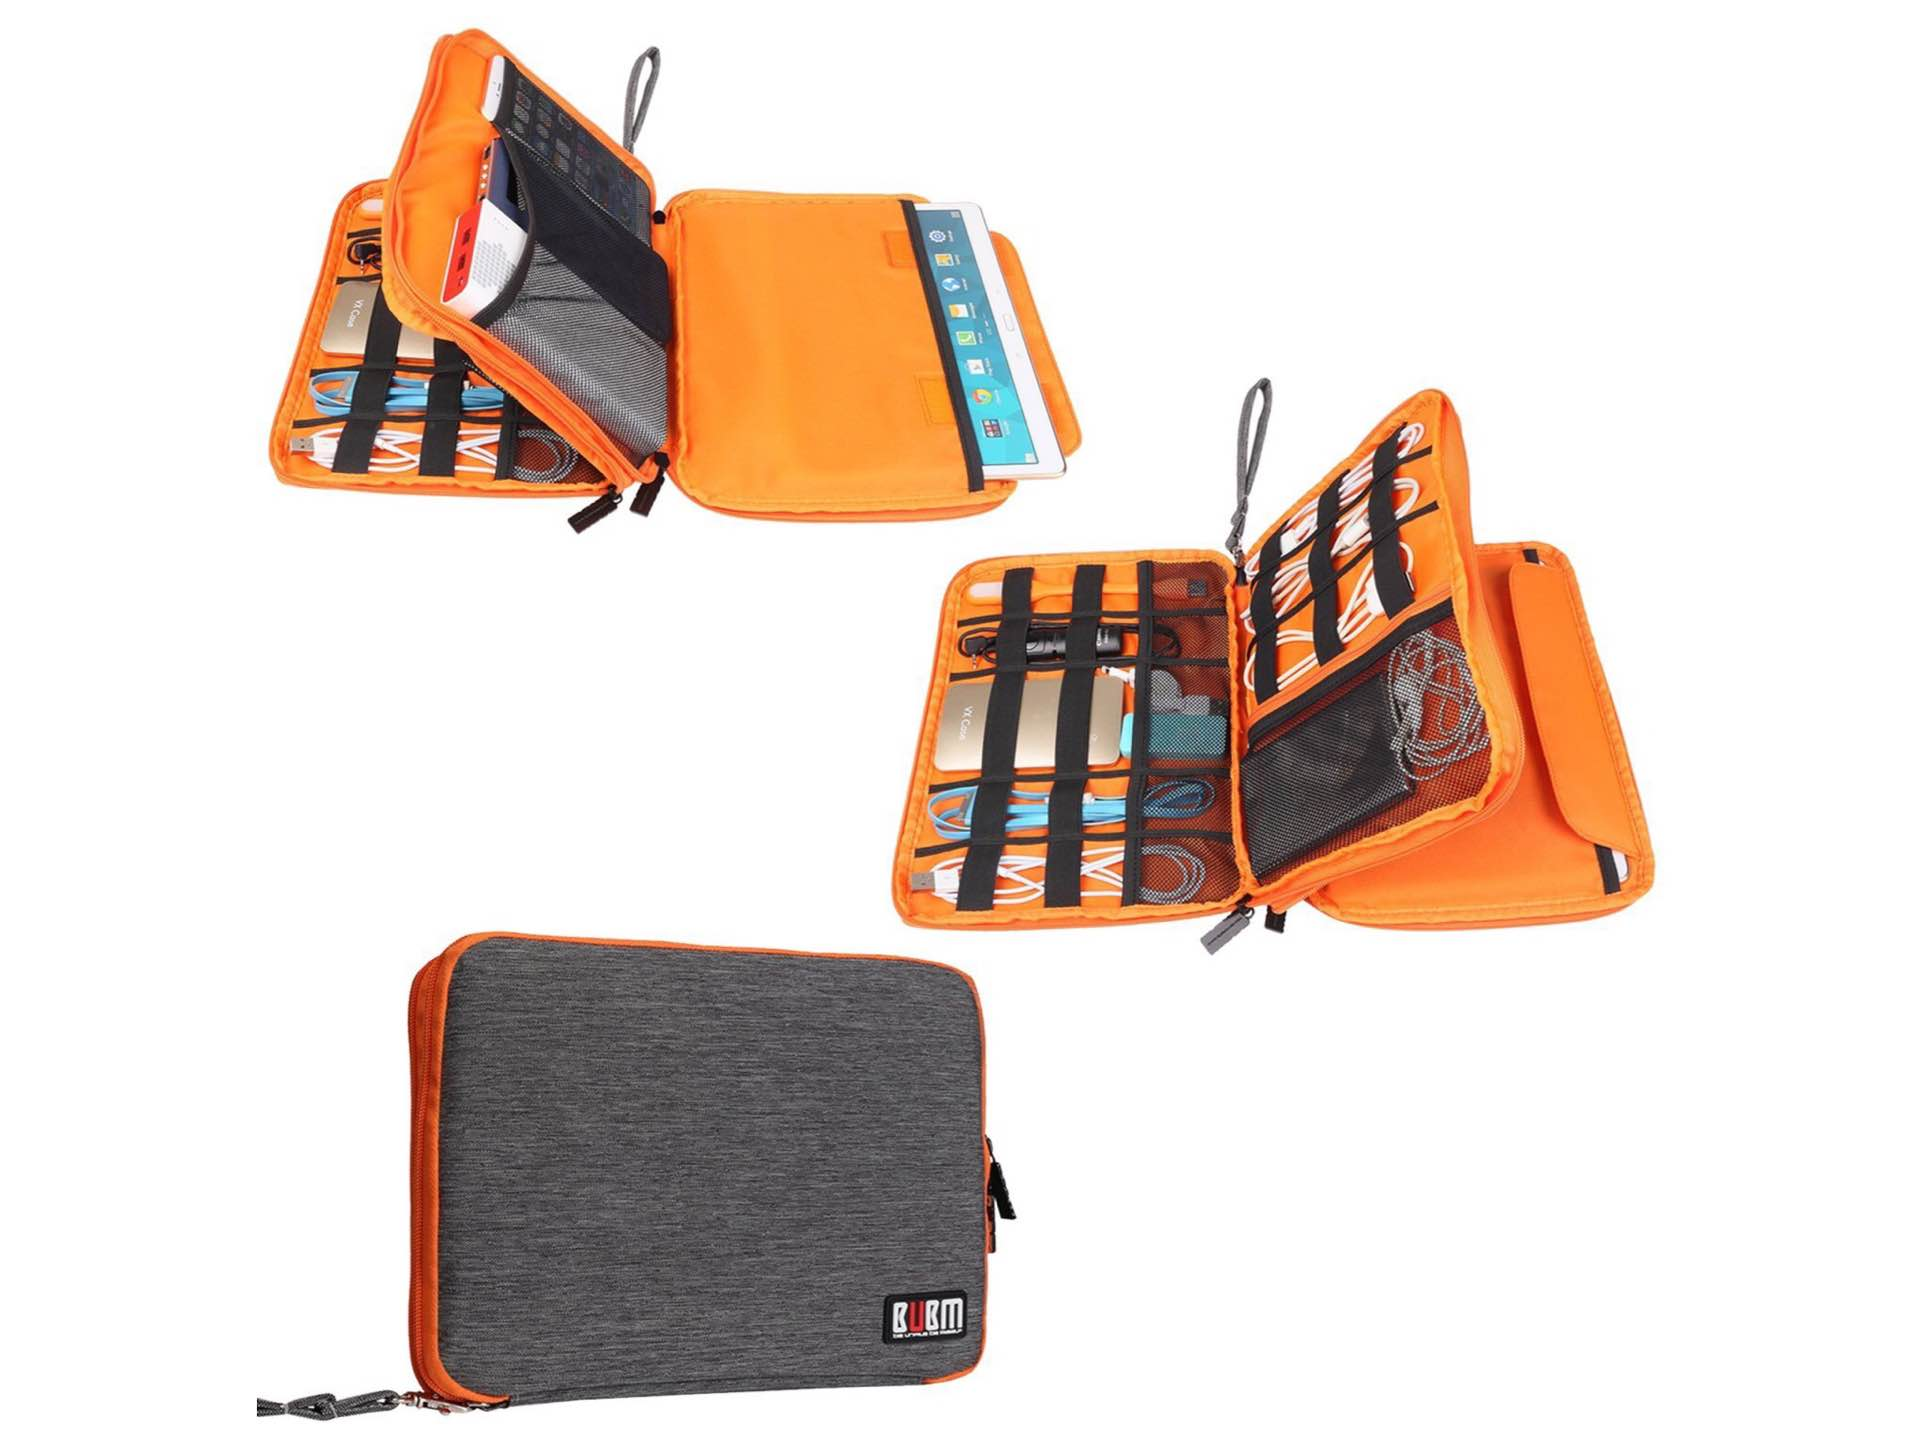 bubm-double-layer-travel-gear-organizer